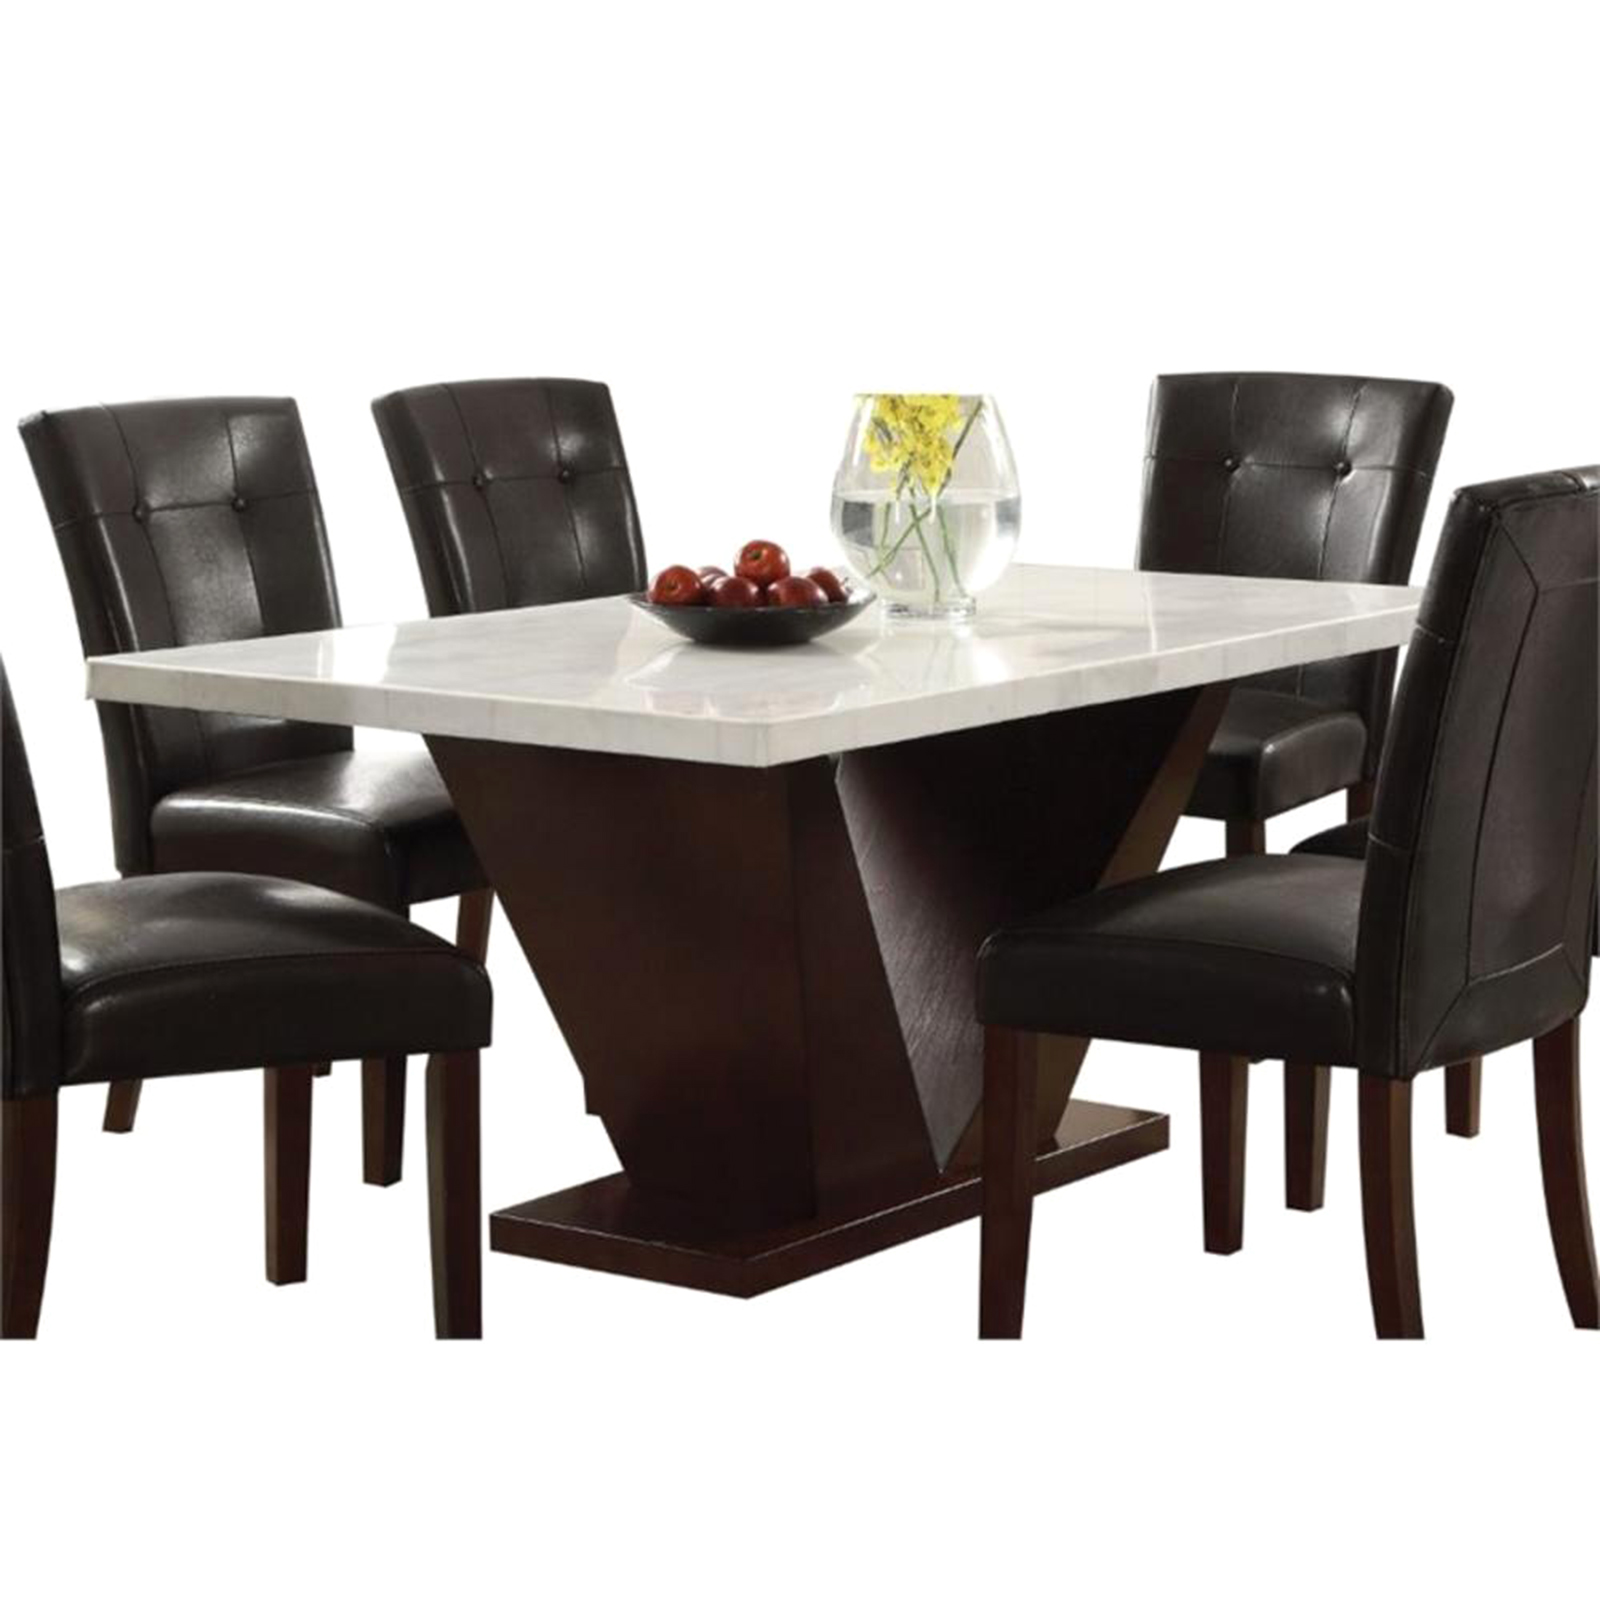 Acme Forbes 59 Wood Dining Table Sears Marketplace